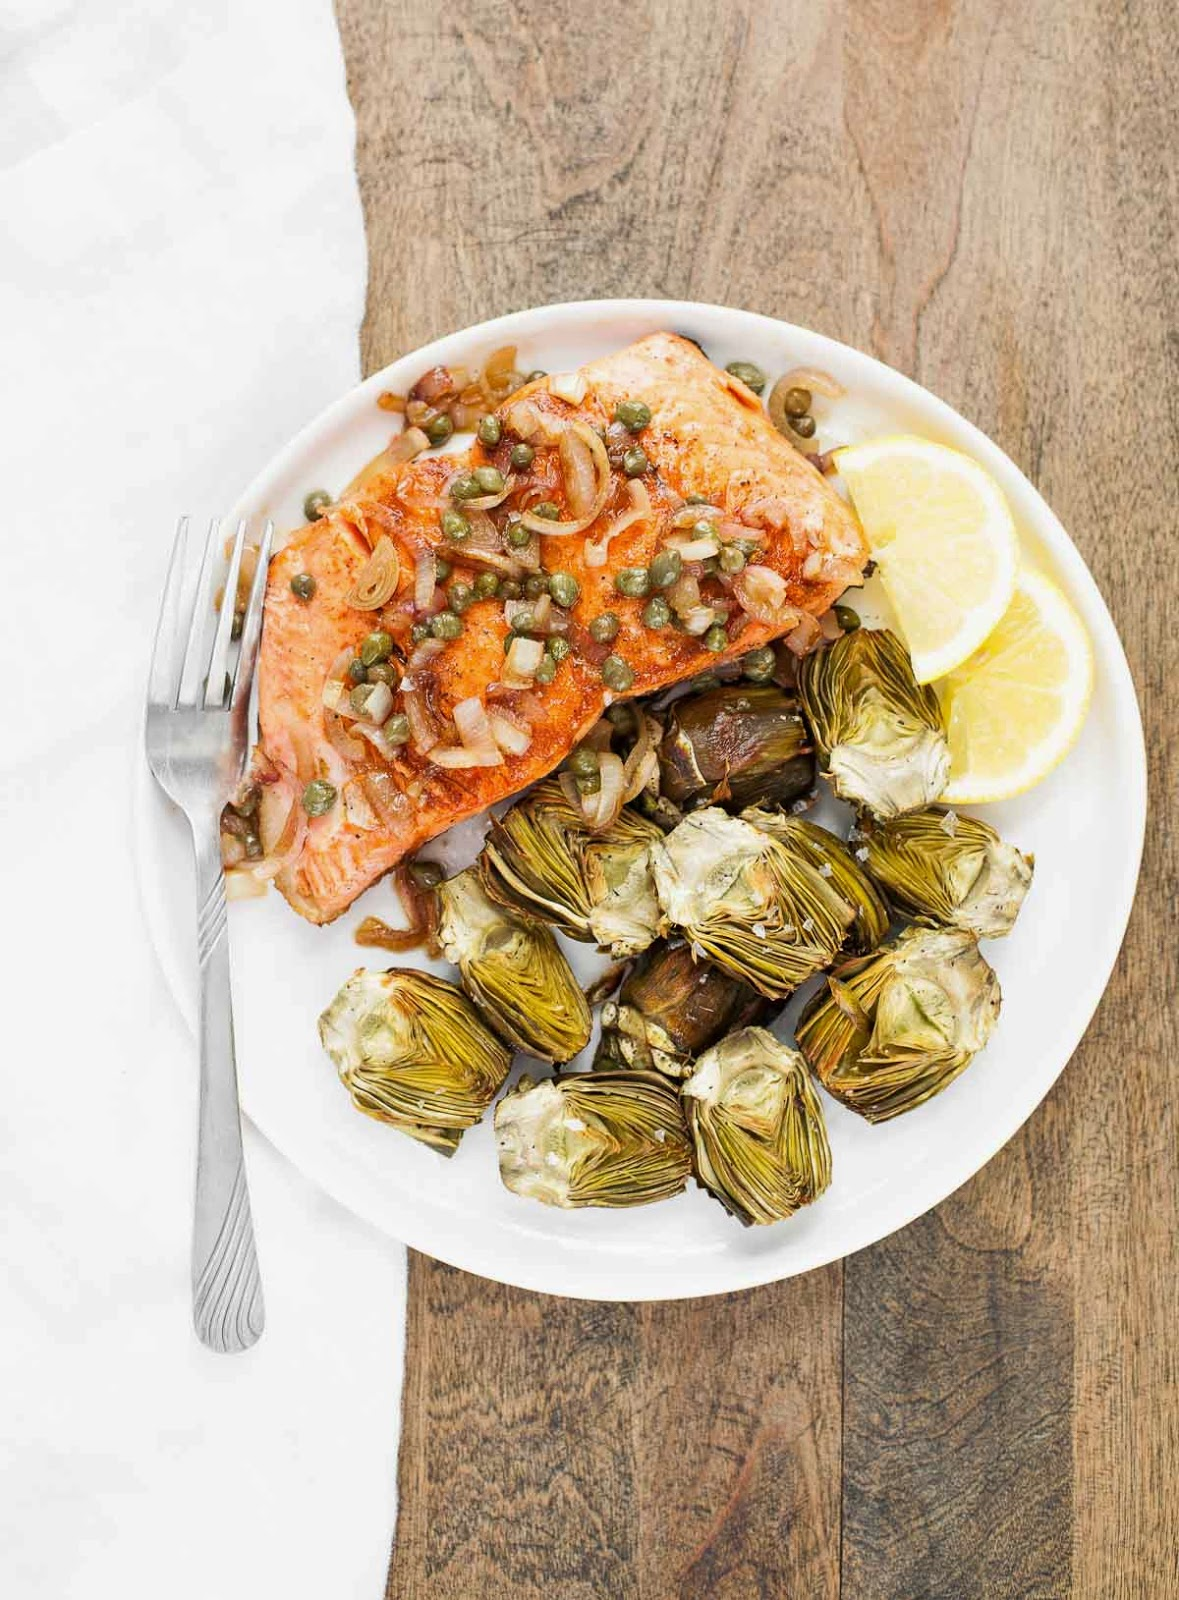 Pan-Seared Salmon with Capers and Baby Artichokes | acalculatedwhisk.com A delicious paleo meal that takes less than 30 minutes to make!